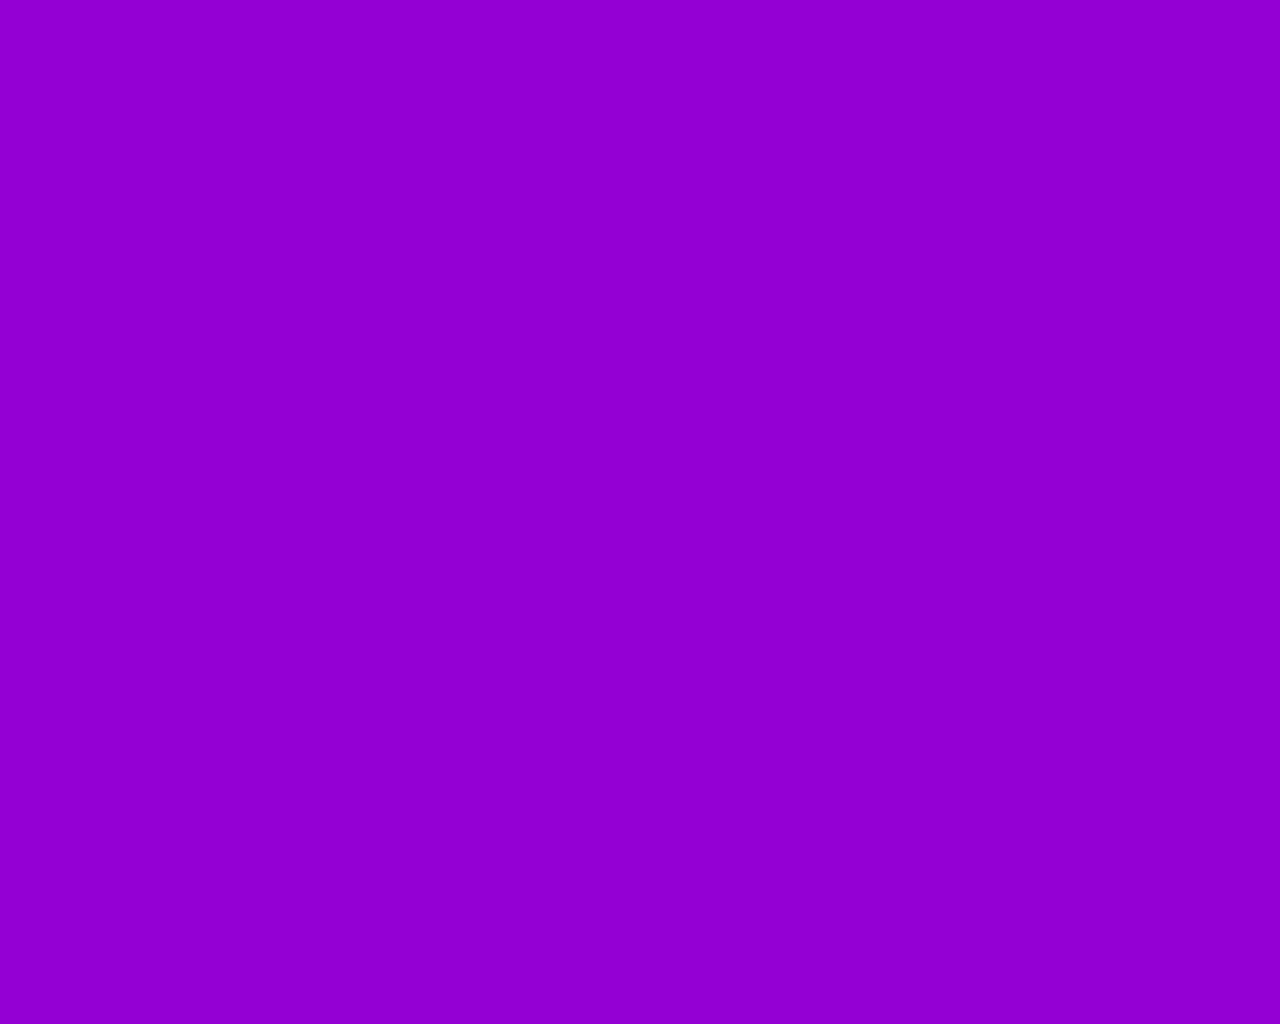 1280x1024 Dark Violet Solid Color Background